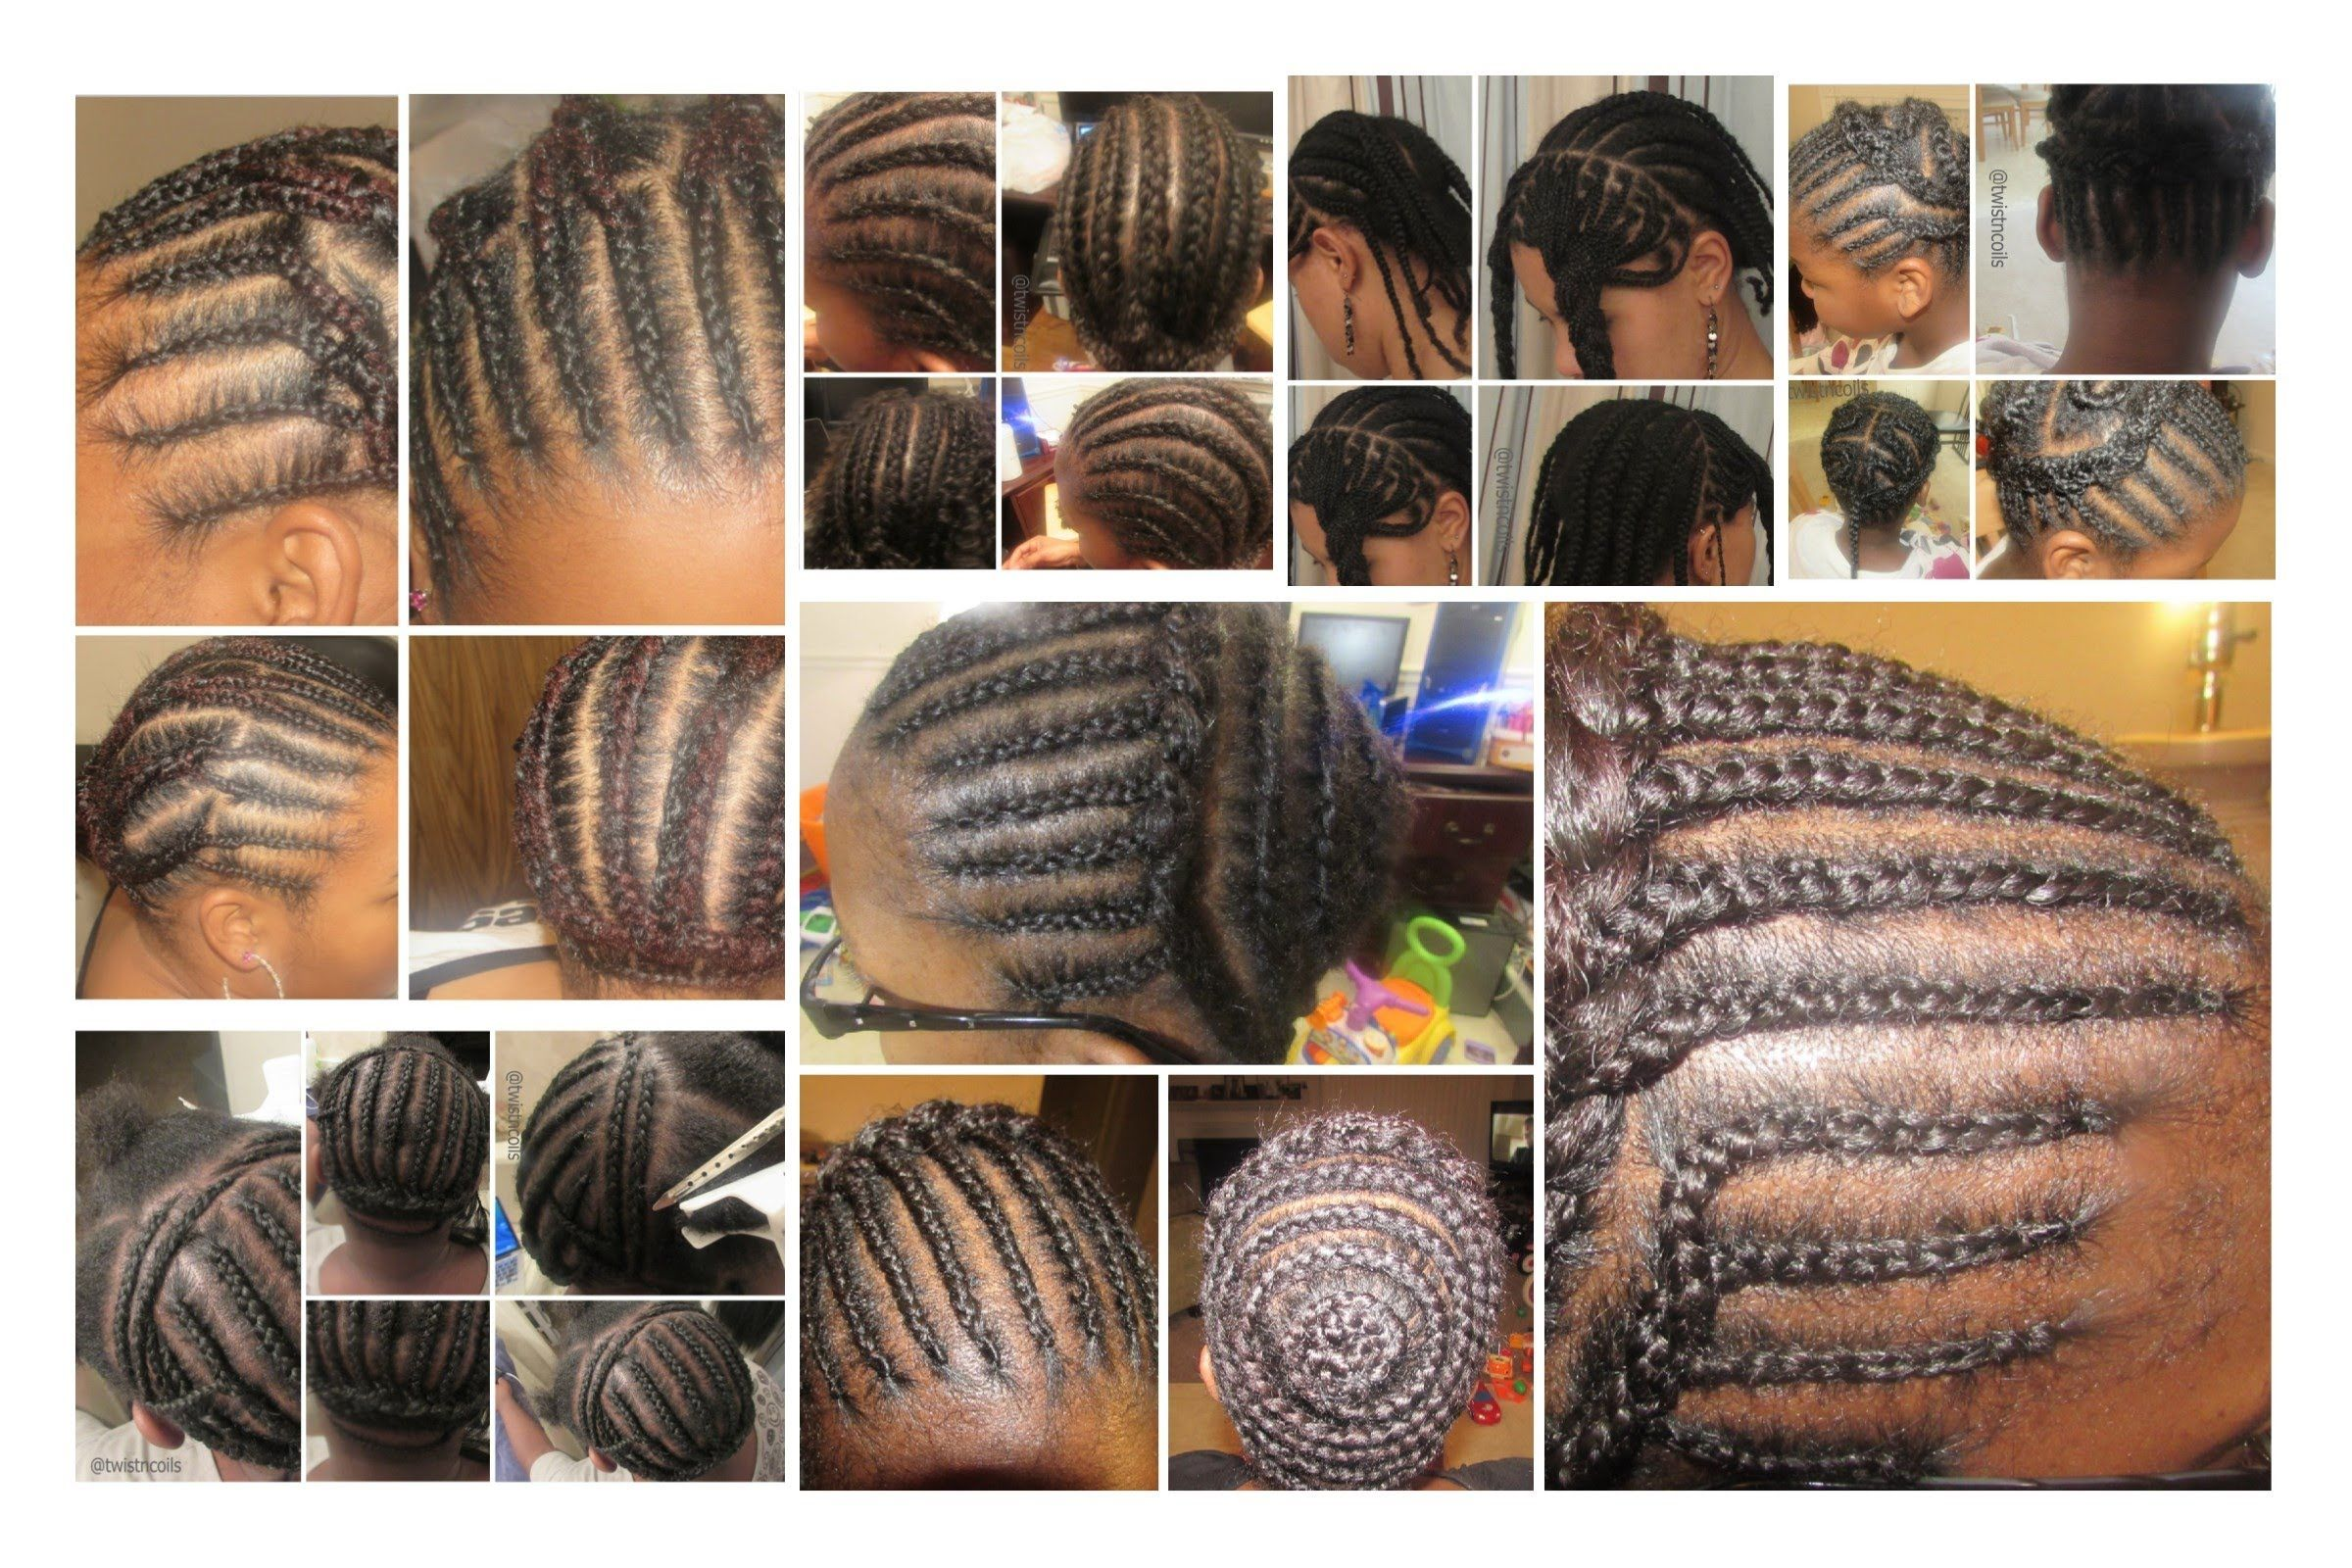 Braid Patterns For Different Crochet Styles Hair Patterns